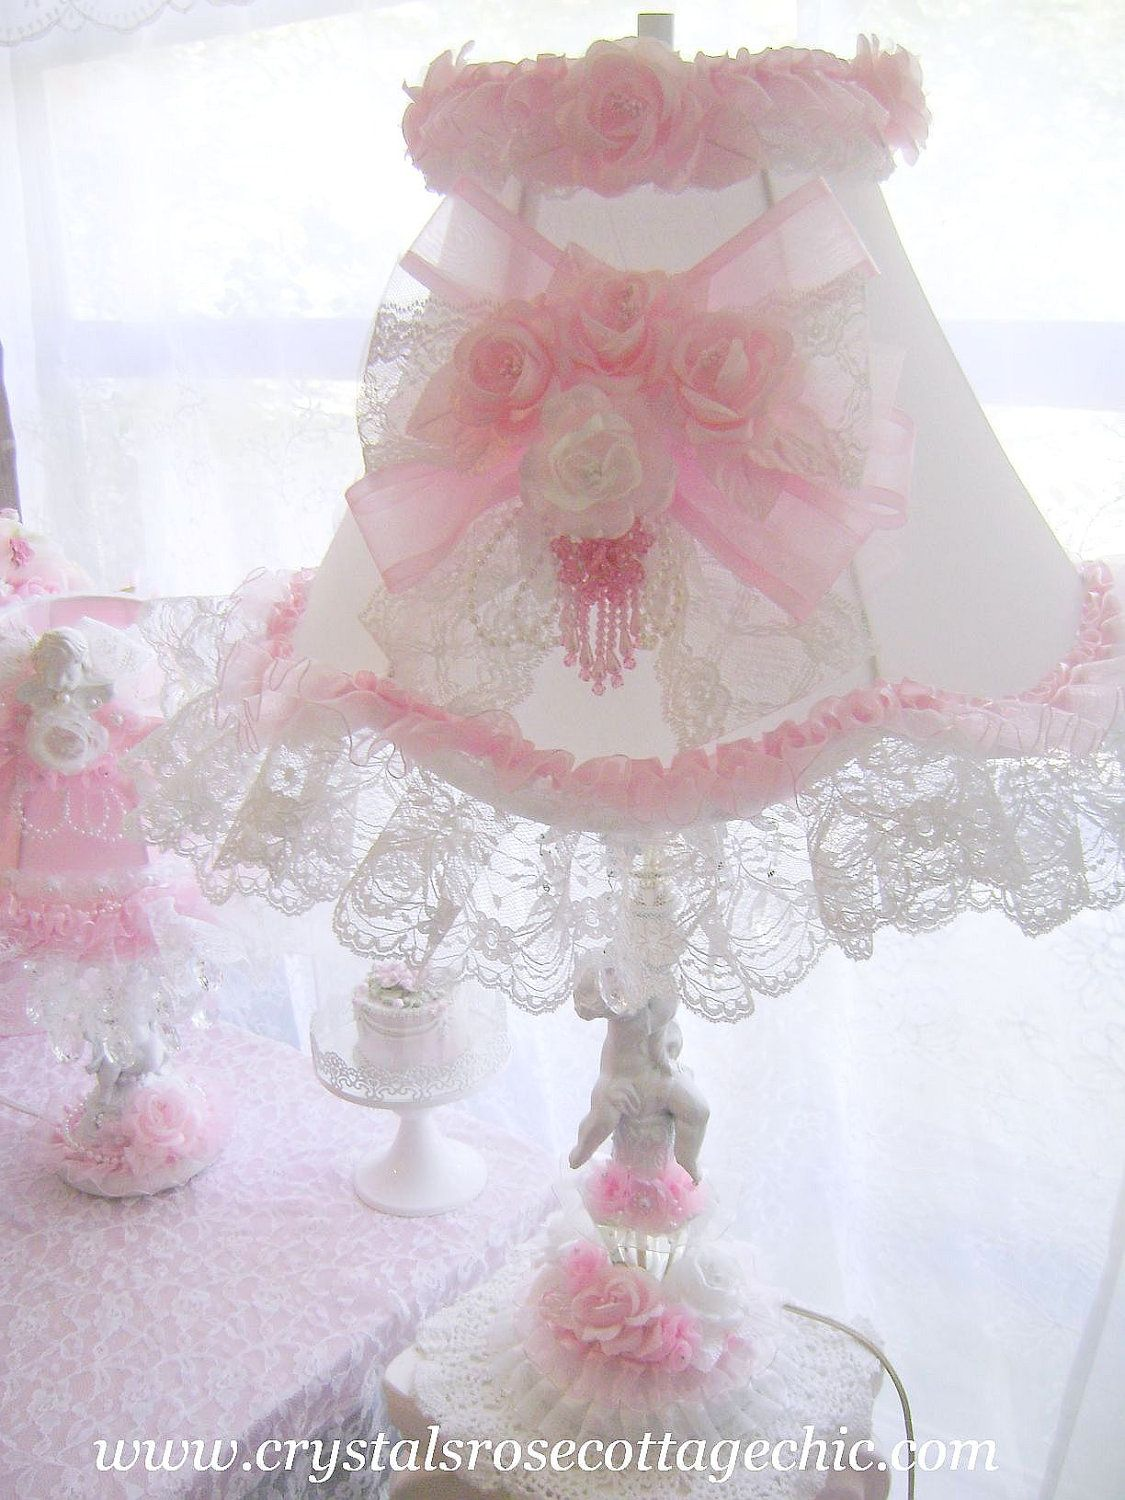 Shabby Chic Bedroom Lamps Vintage Romance Cherub Lampshade Rosy Pinterest Shabby Chic